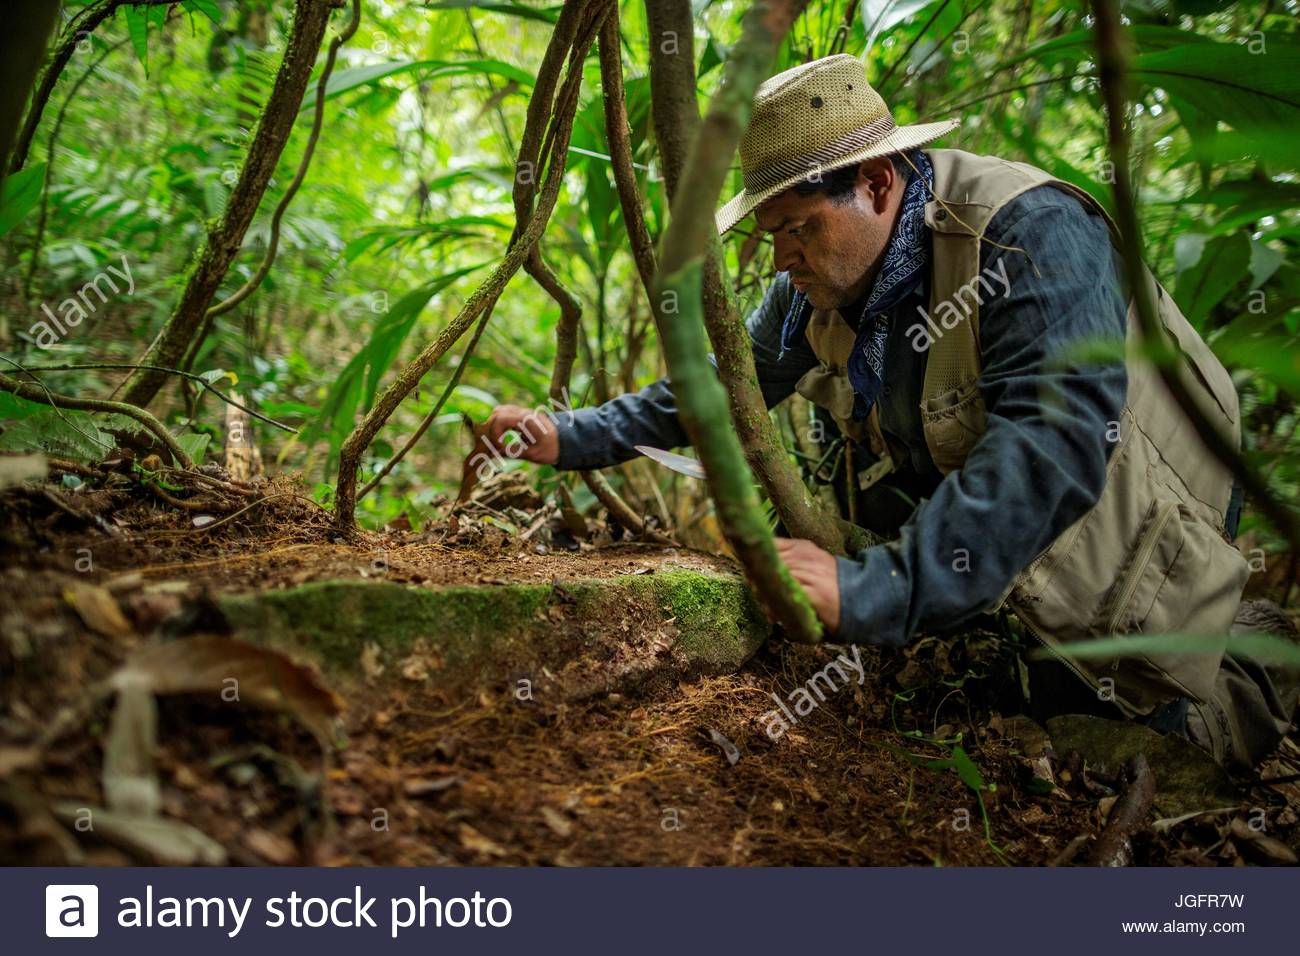 An archaeologist brushes forest litter from a stone upon entering the pre-Colombian ruins of a lost city in Mosquitia. - Stock Image